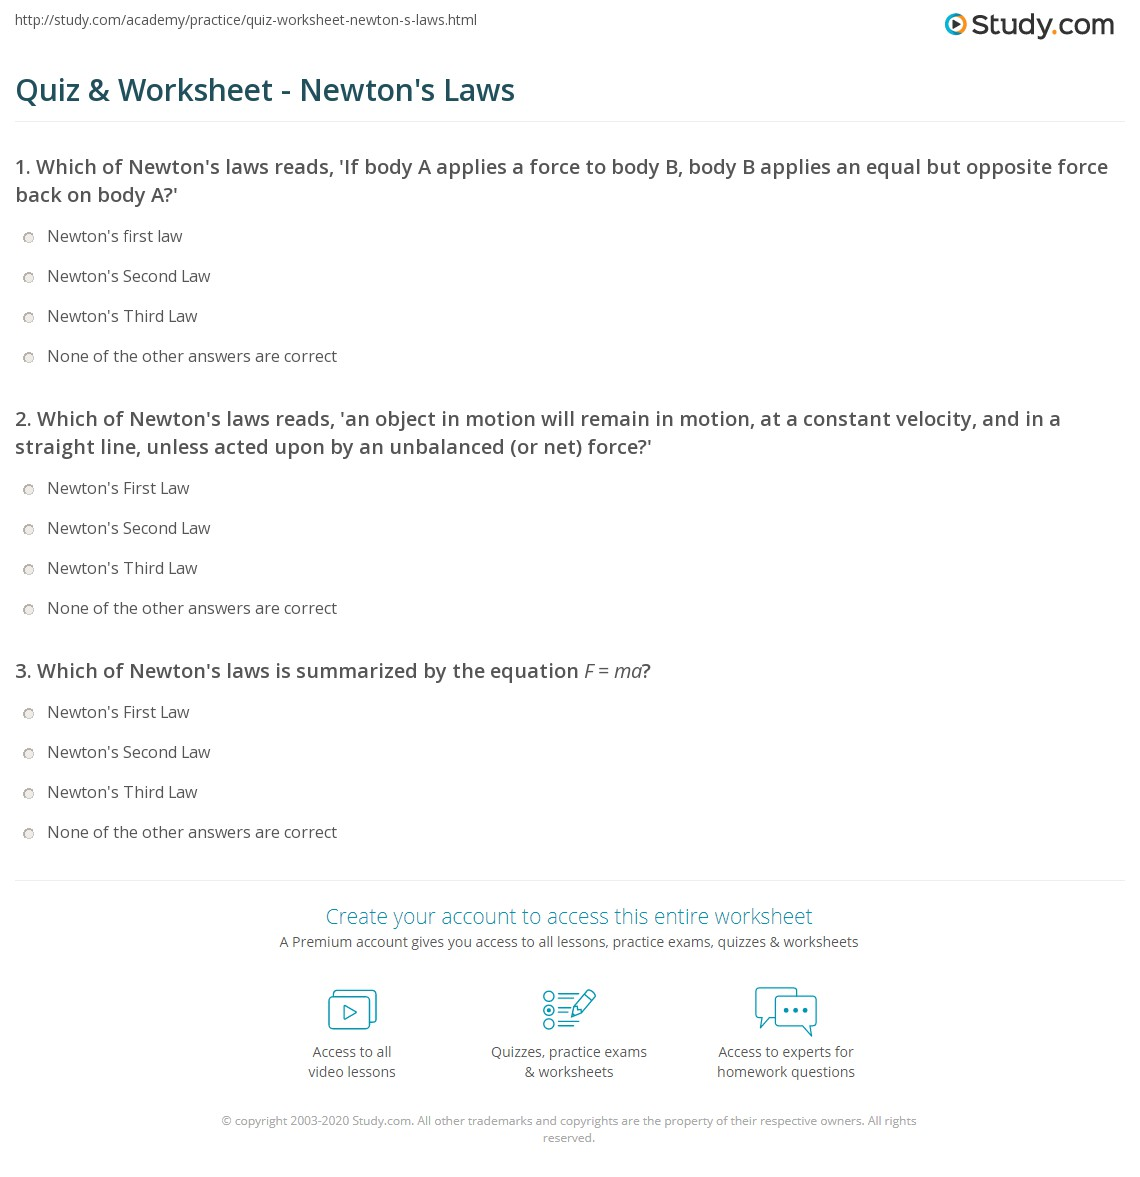 Quiz & Worksheet - Newton's Laws | Study.com